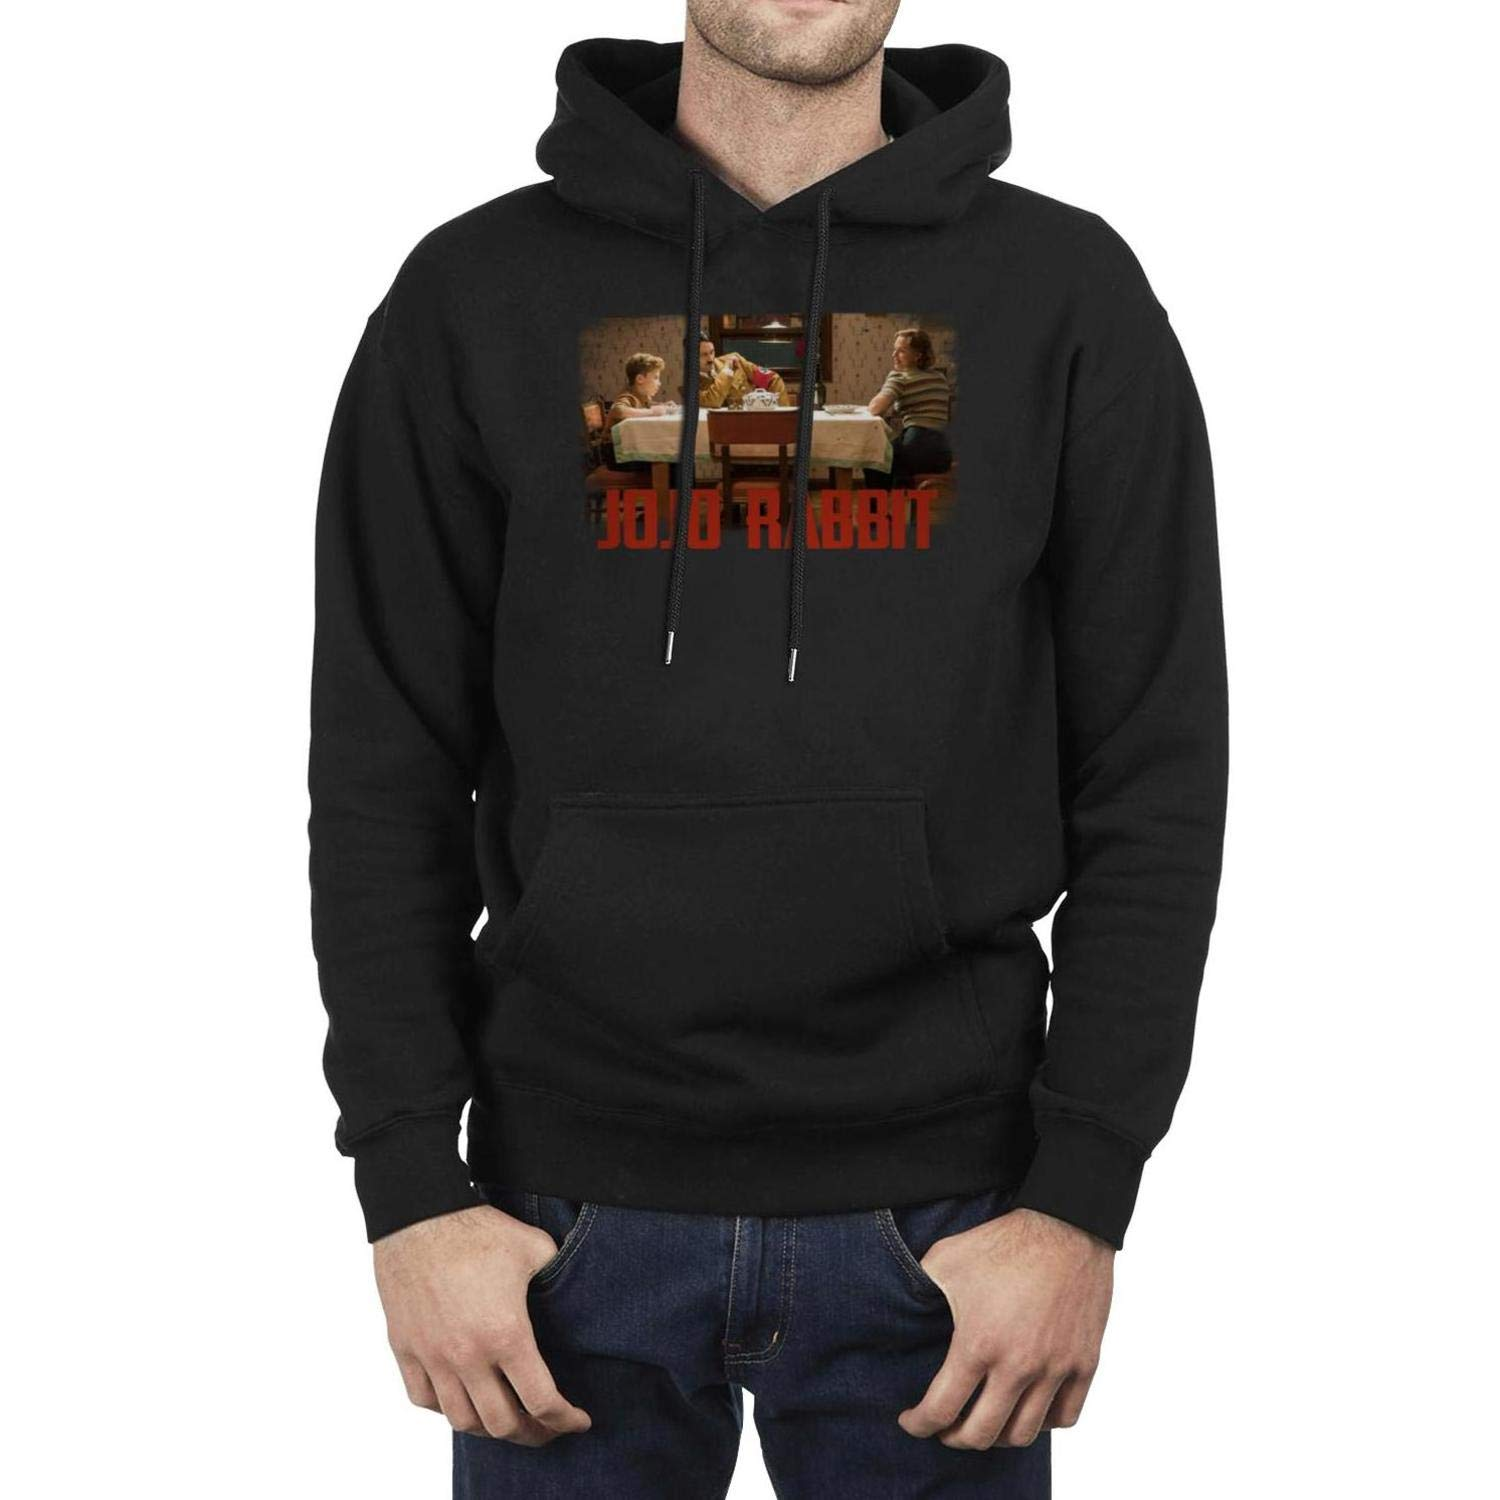 Mens Pullover Hoodie Sweatshirt Long Sleeve Fleece JoJo-Rabbit